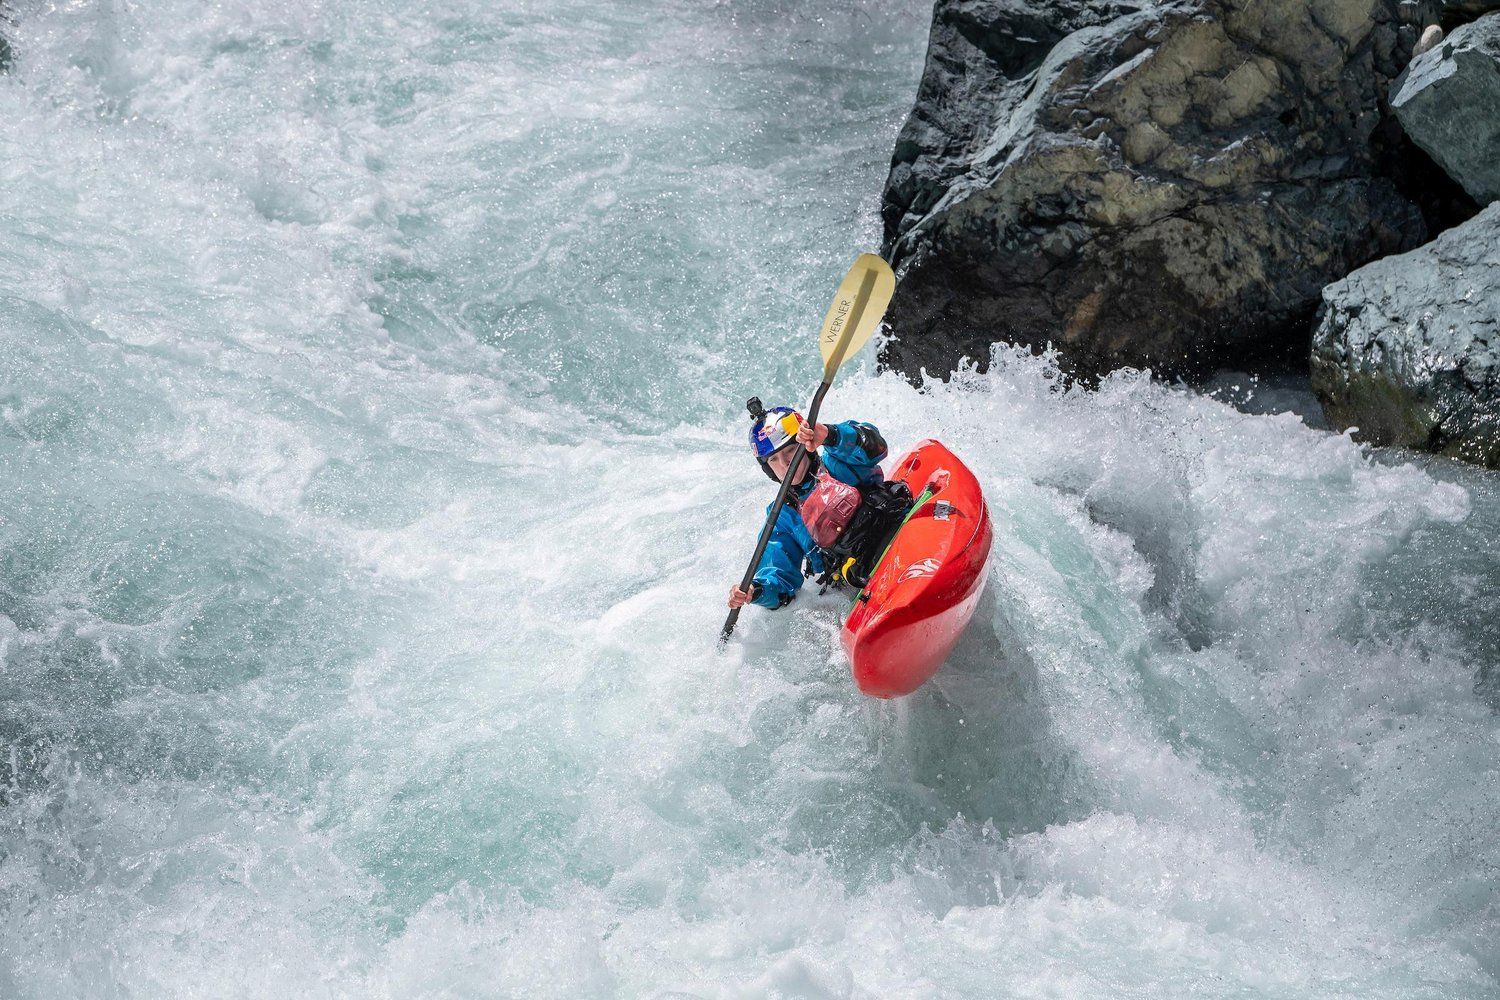 Nouria Newman's solo whitewater kayaking expedition in northern Indian, The Ladakh Project